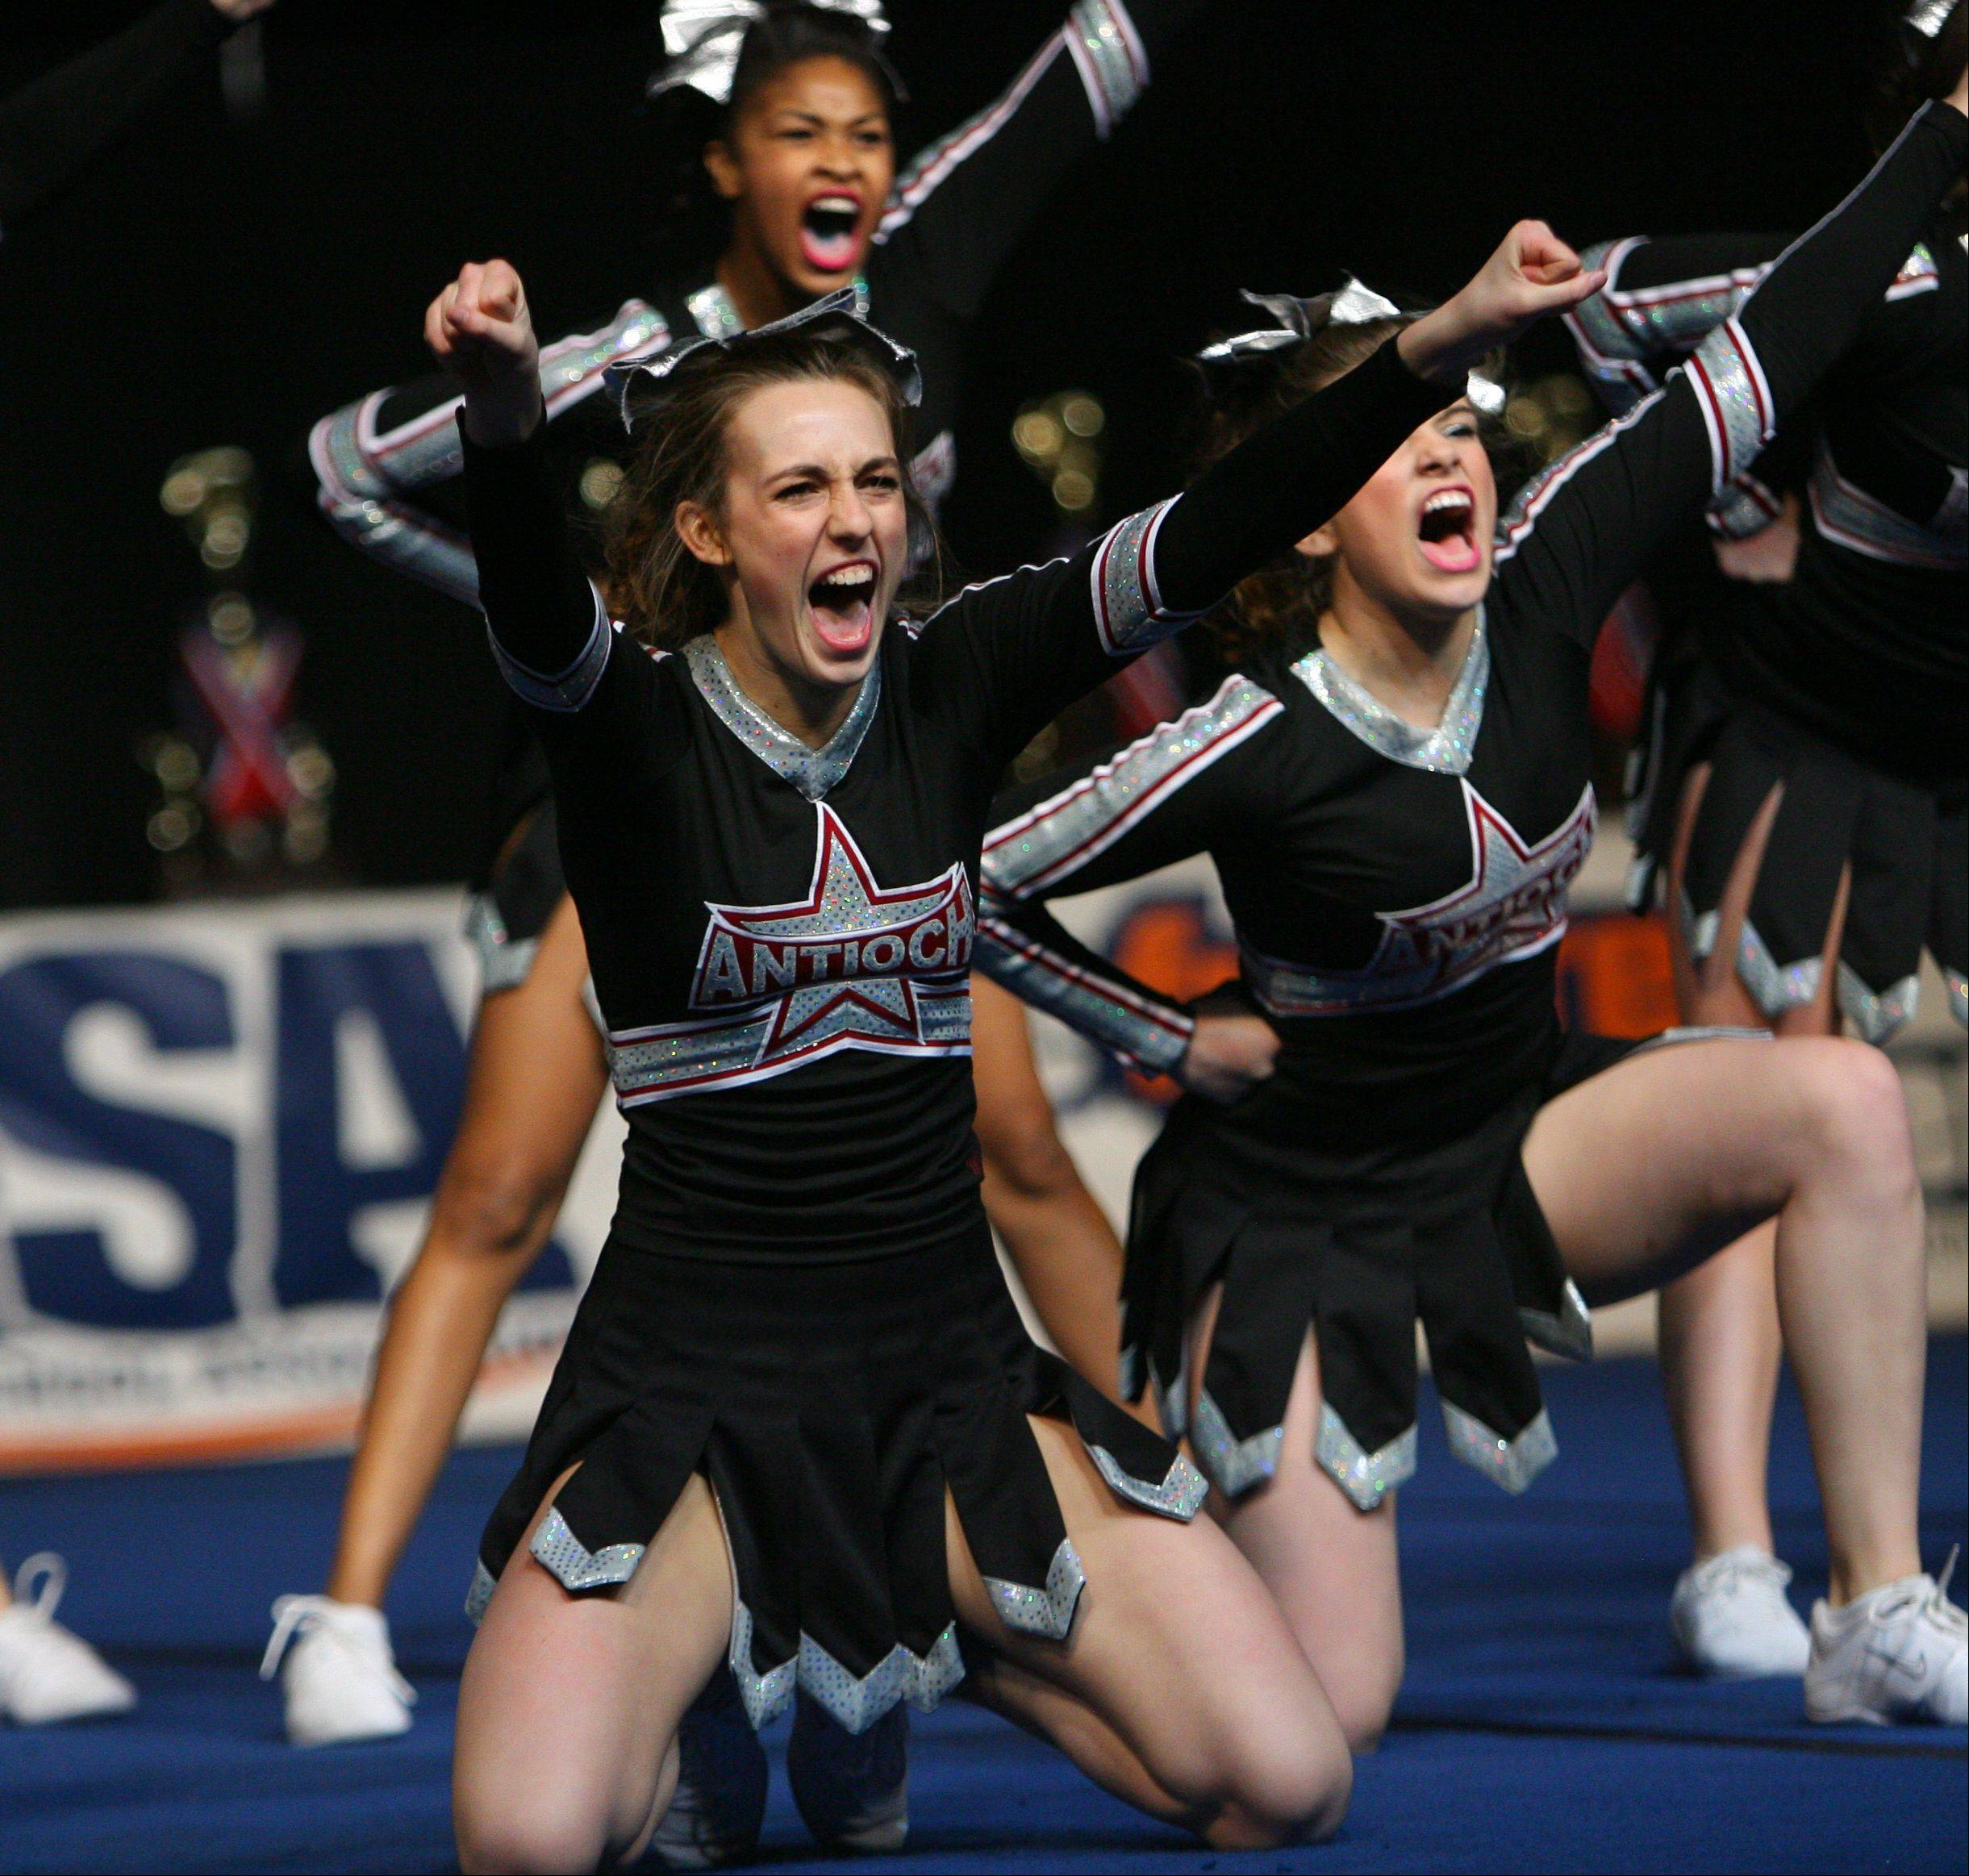 Antioch High School participates in the IHSA Competitive Cheerleading finals on Saturday, Feb. 2 at the U.S. Cellular Coliseum in Bloomington.